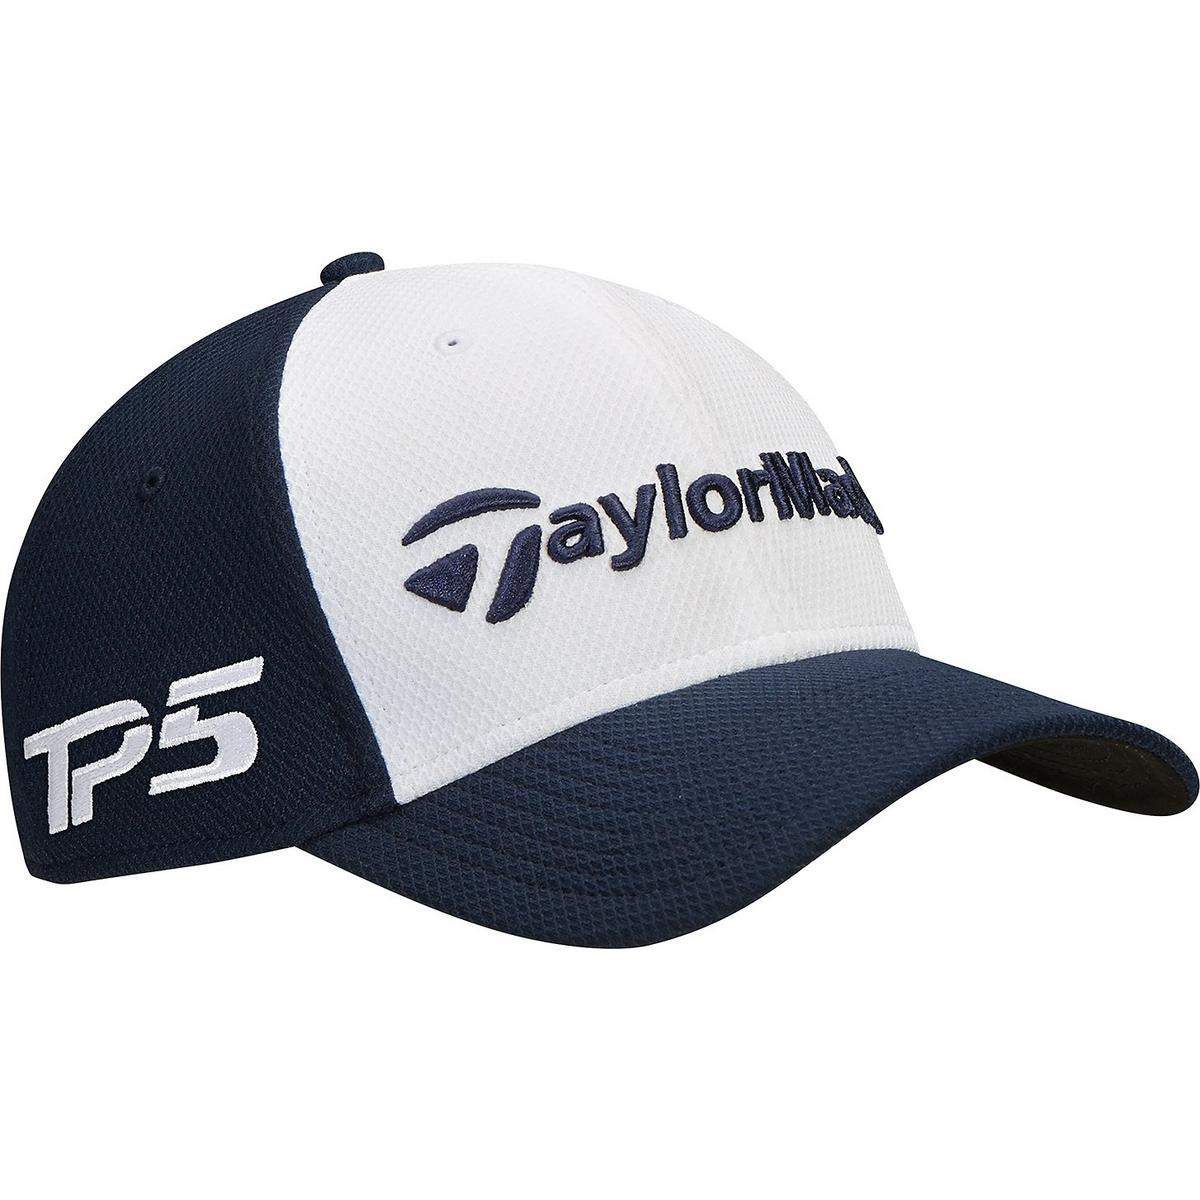 Men s Tour New Era 39Thirty Cap   Golf Town Limited 9b6233de7fd